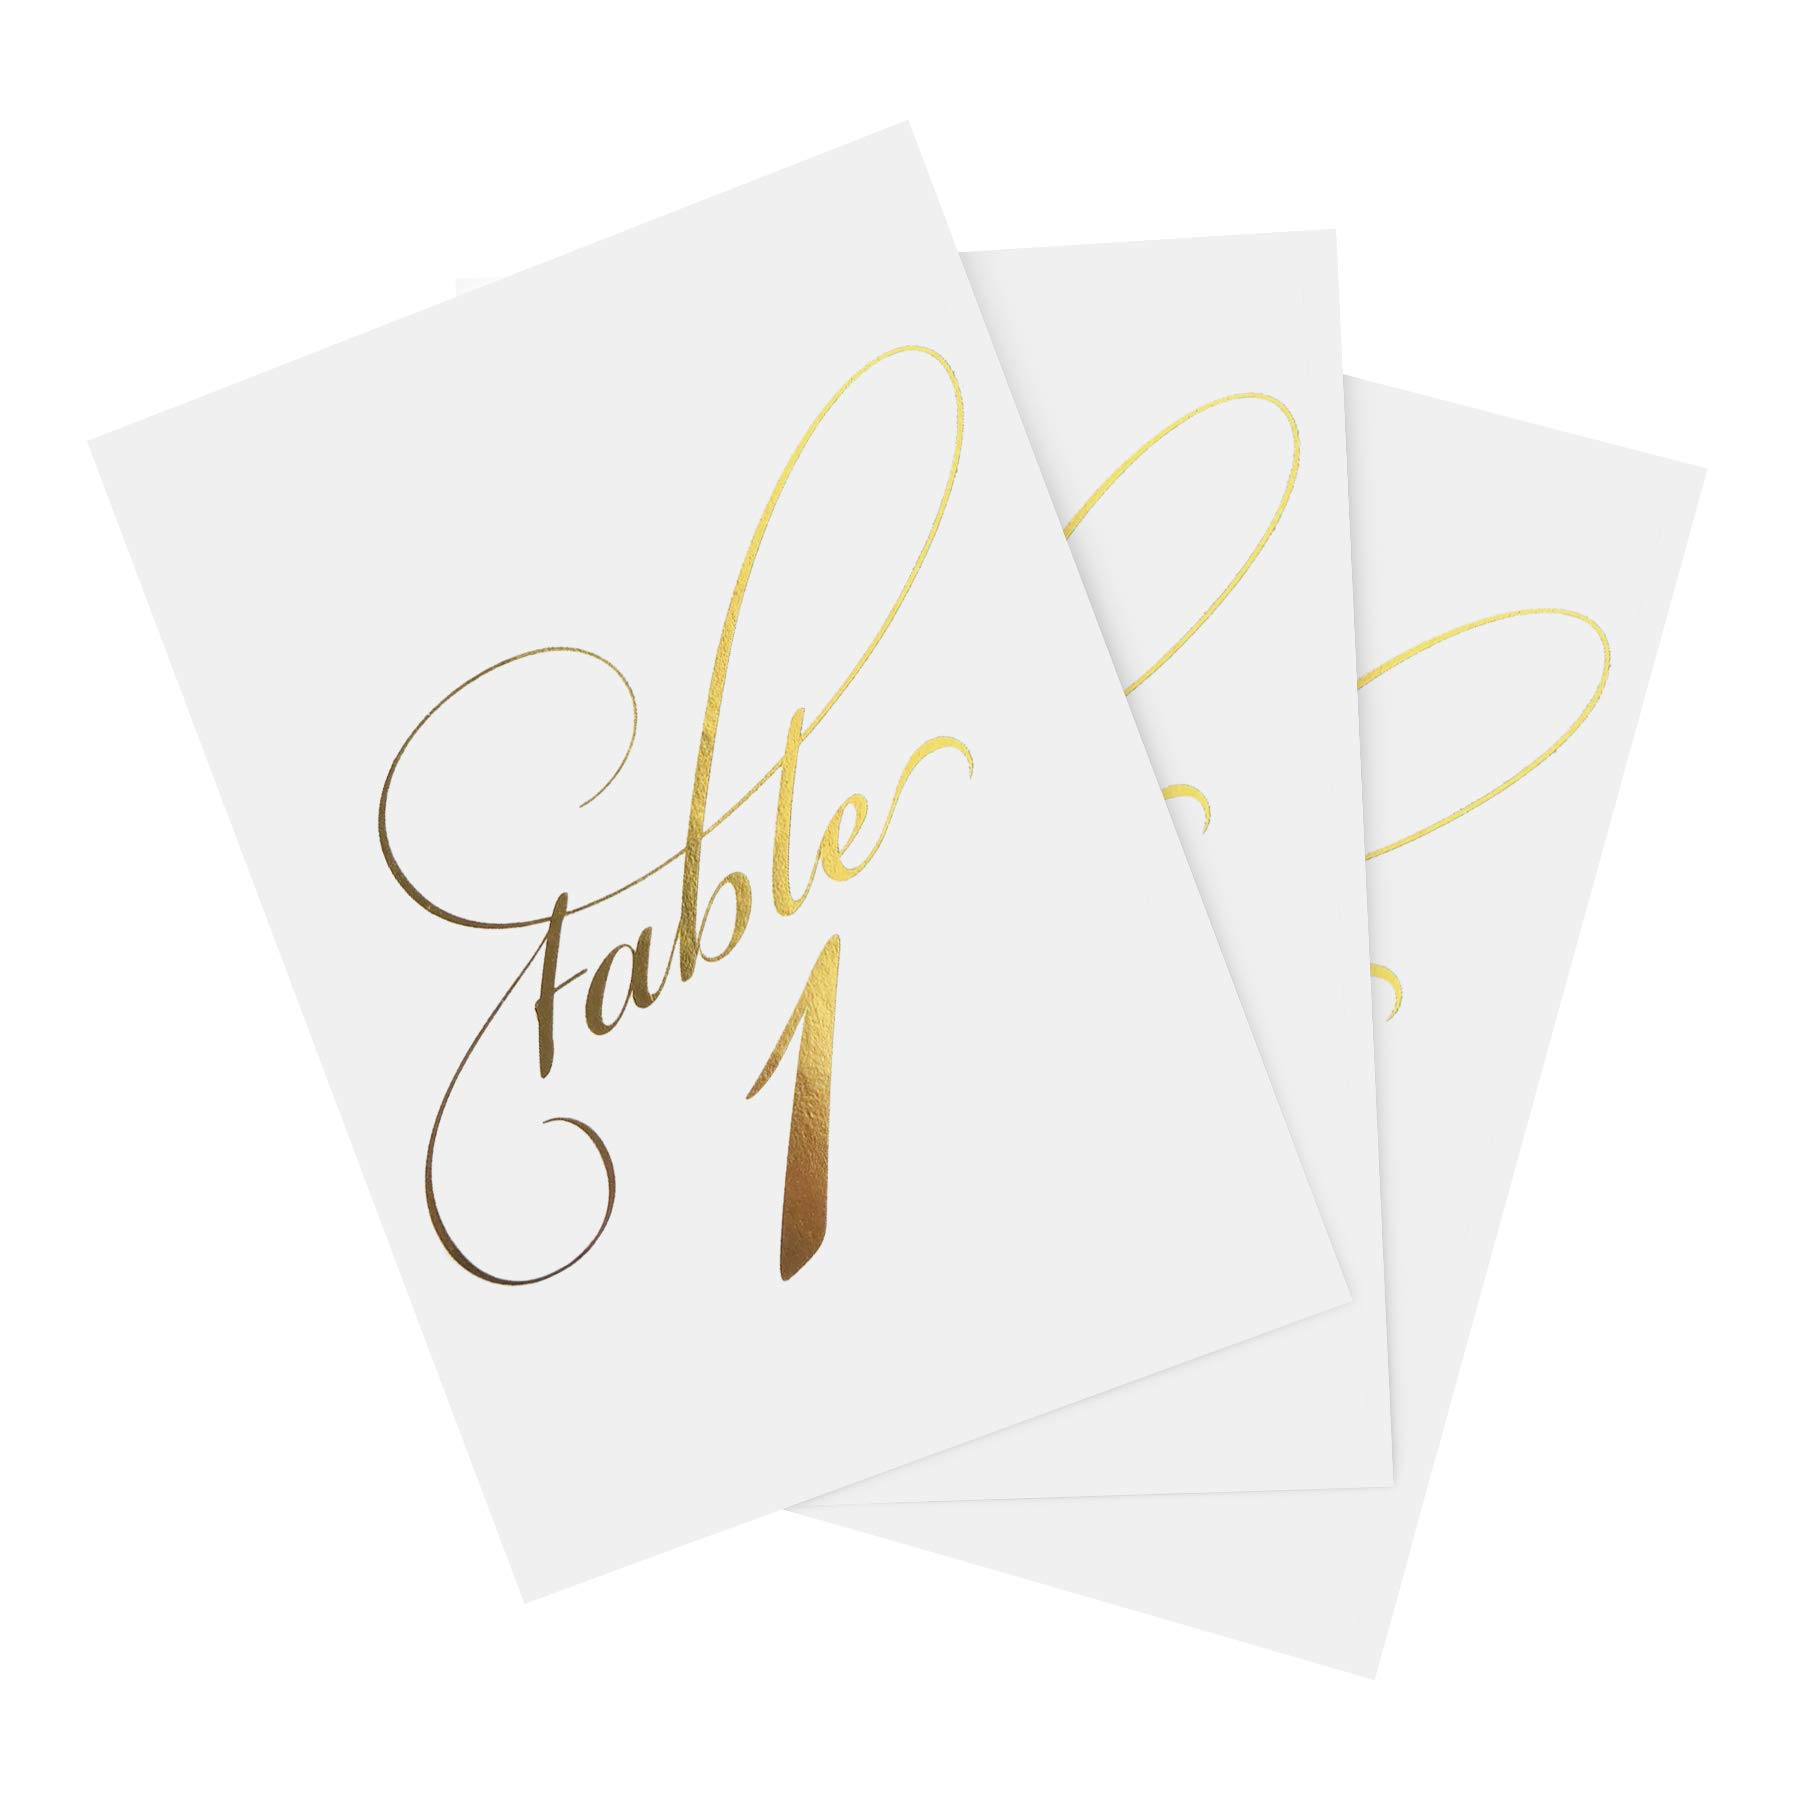 Gold Wedding Table Numbers (Assorted Color Options Available), Double Sided 4x6 Calligraphy Design, Numbers 1-40 & Head Table Card Included by Bliss Paper Boutique